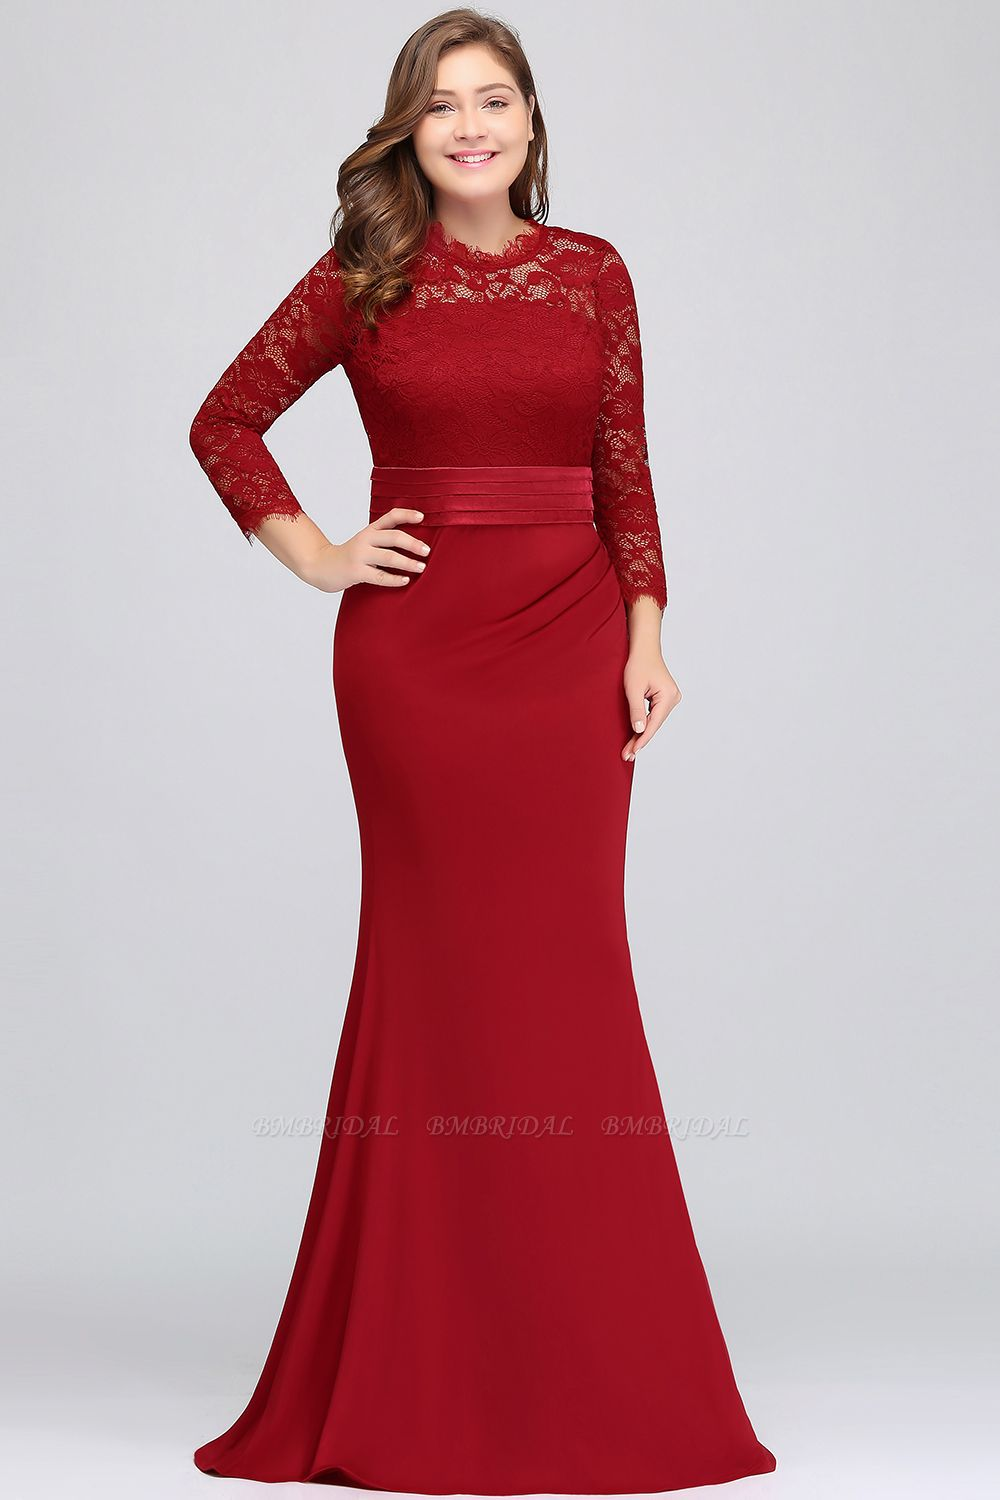 BMbridal Plus Size Mermaid Long Red Lace Bridesmaid Dresses with 3/4 Sleeves